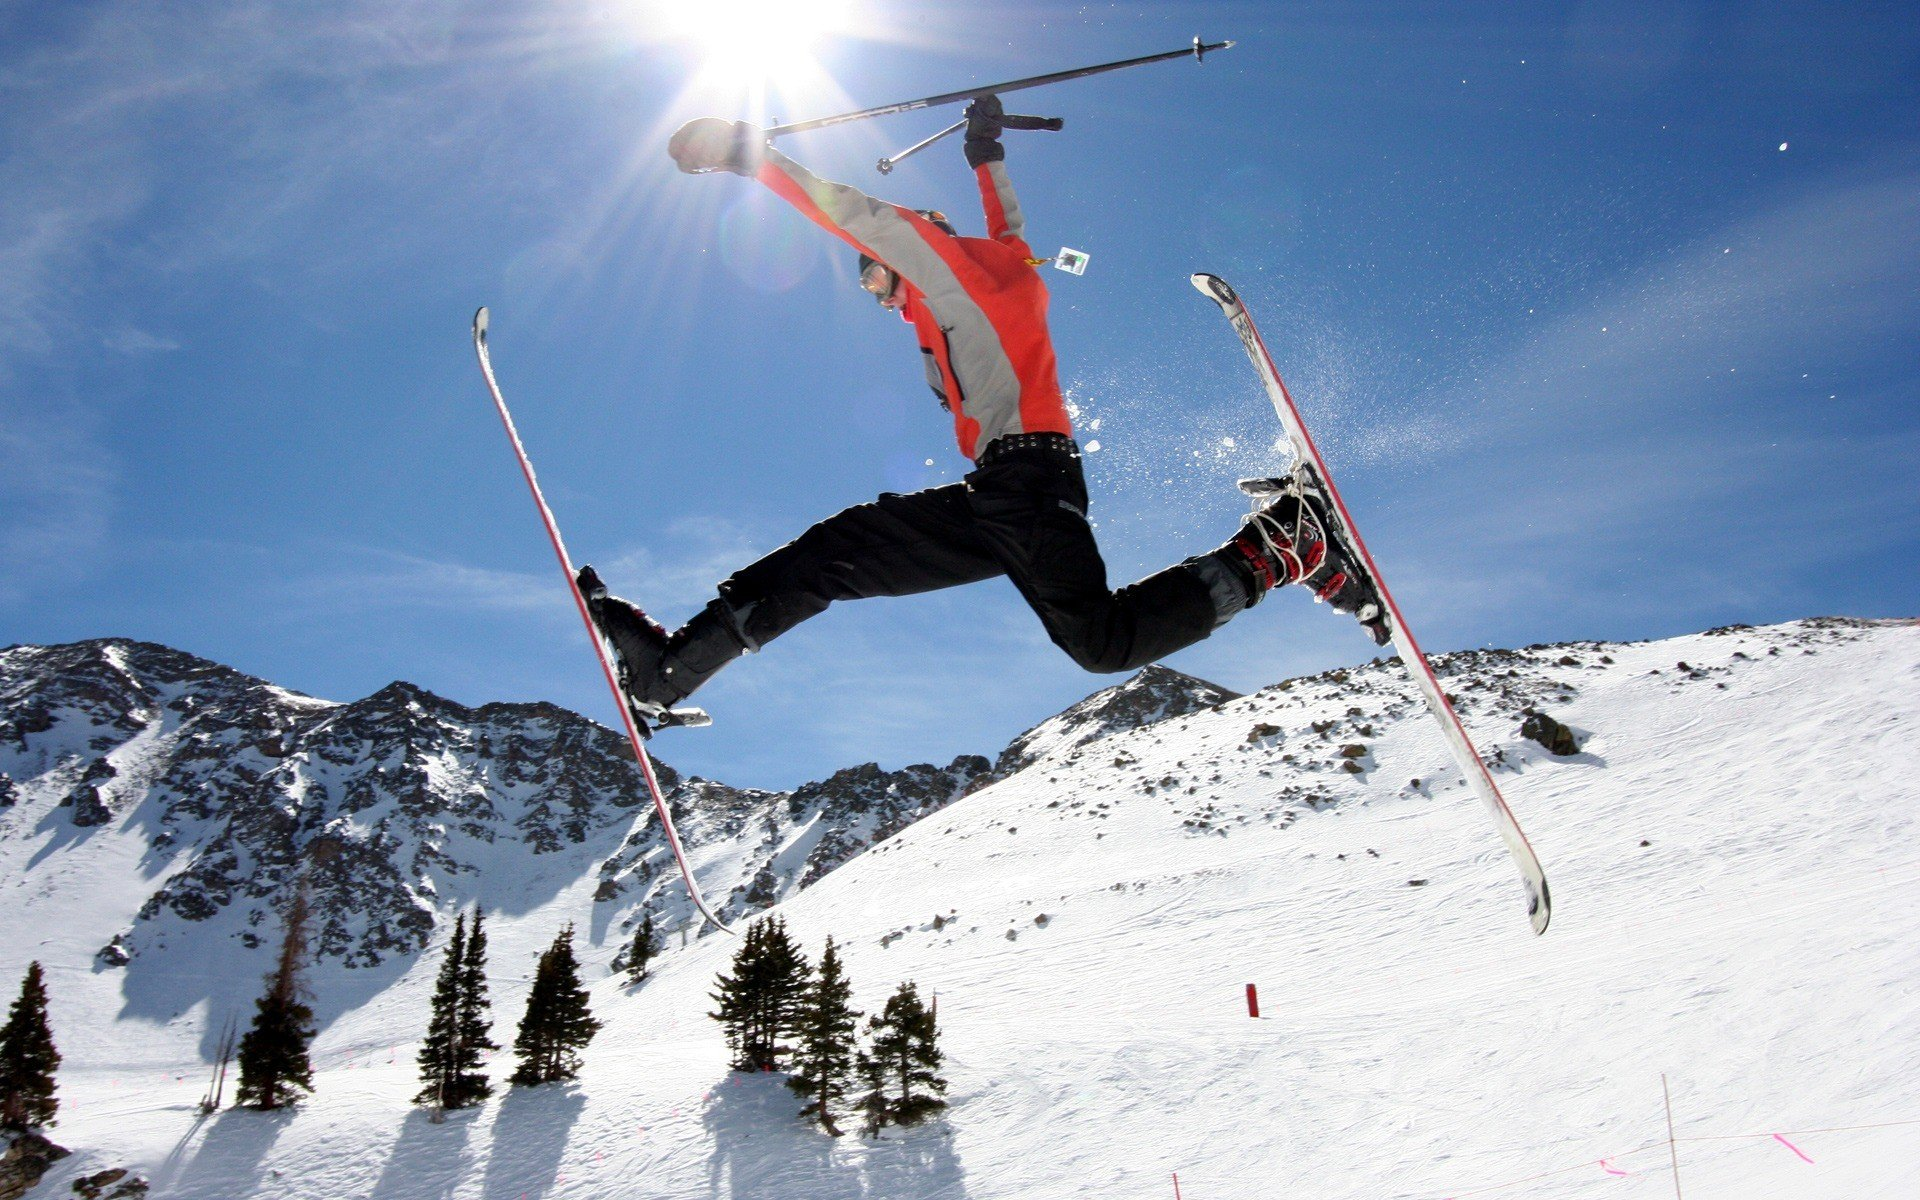 Download hd 1920x1200 Skiing PC wallpaper ID:27288 for free